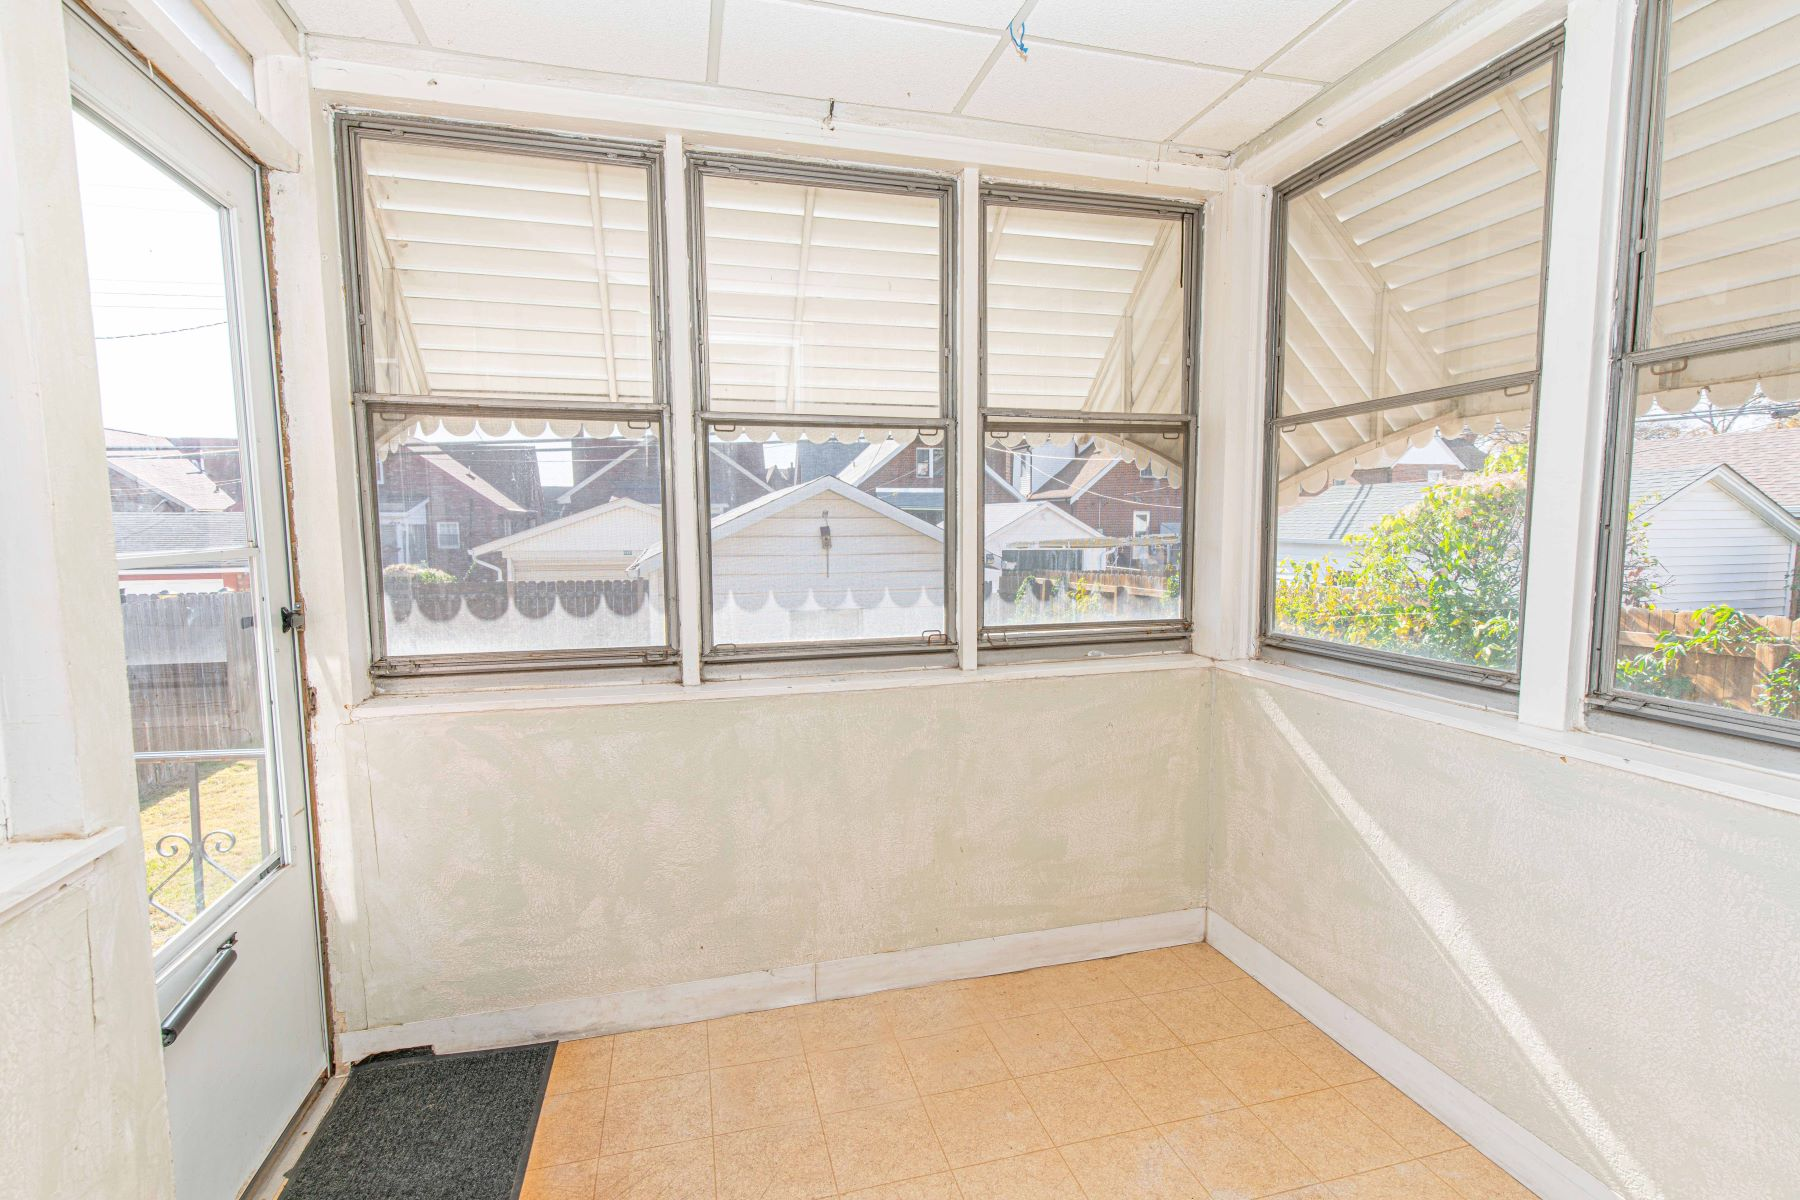 Additional photo for property listing at Vintage charm in Northampton 5336 Tholozan Avenue St. Louis, Missouri 63109 United States